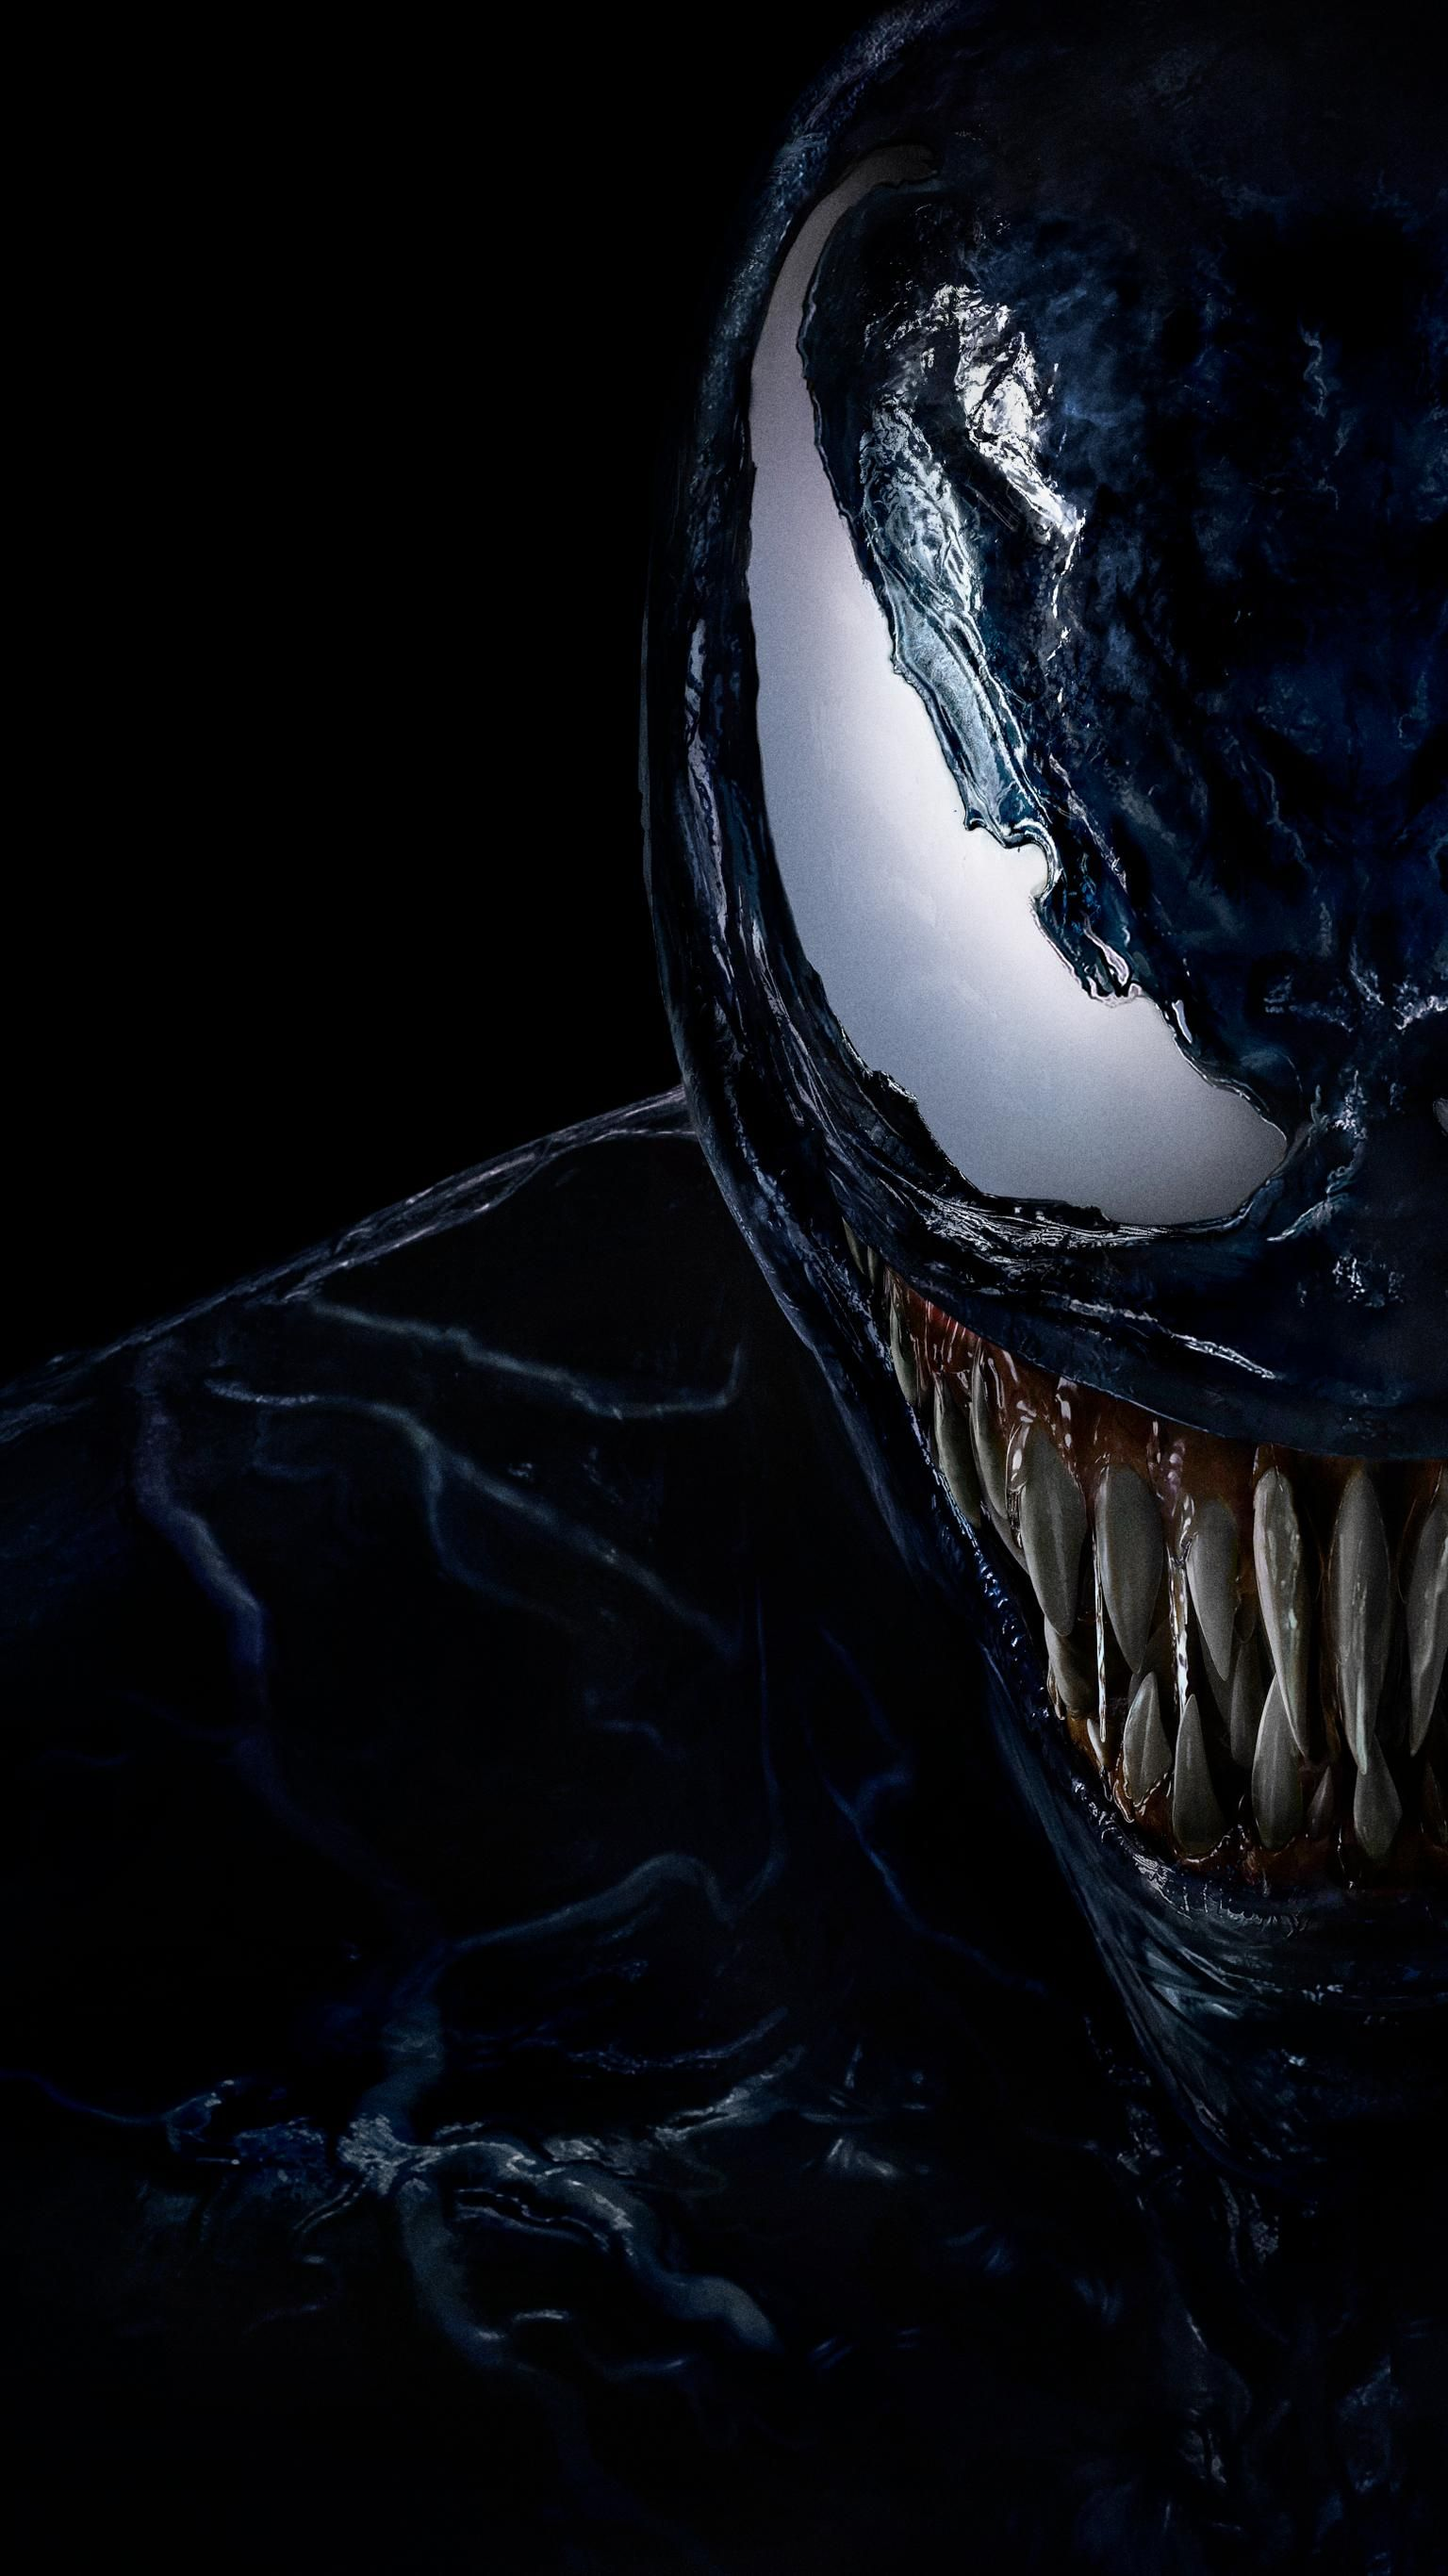 Venom Wallpaper Phone Posted By Michelle Mercado